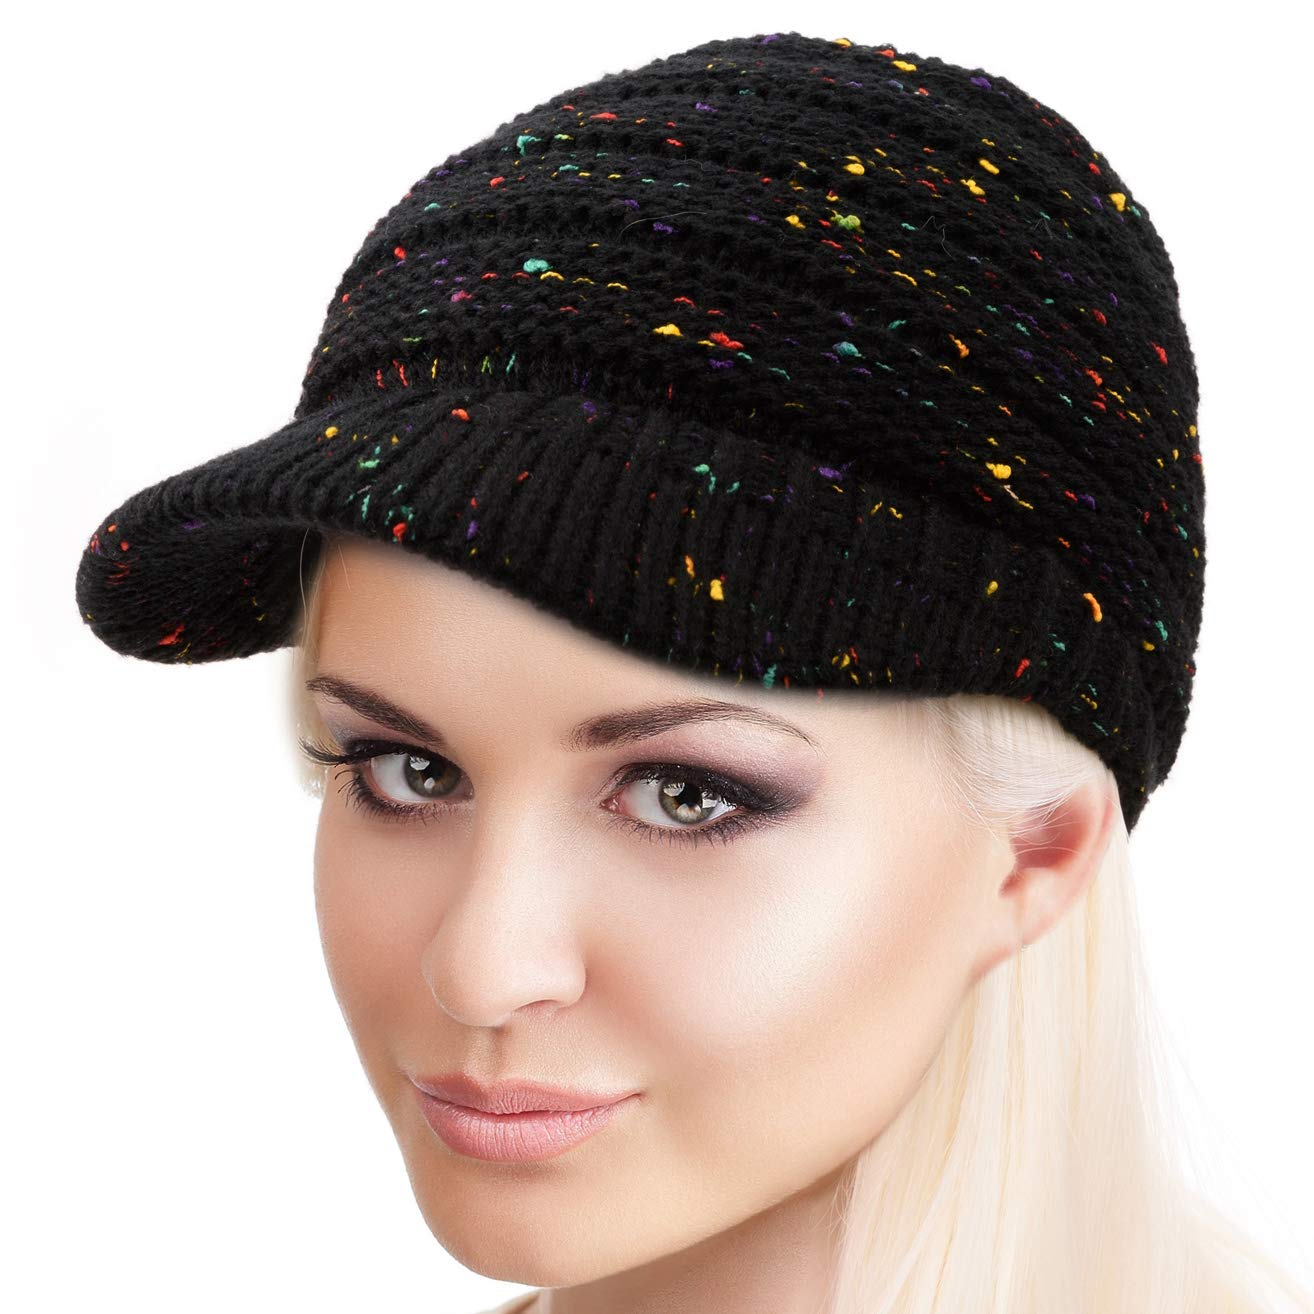 74551ccba66 BeCann Winter Hat Warm Knit Women s High Ponytail Hat Bun Messy Visor  Beanie Cap product image